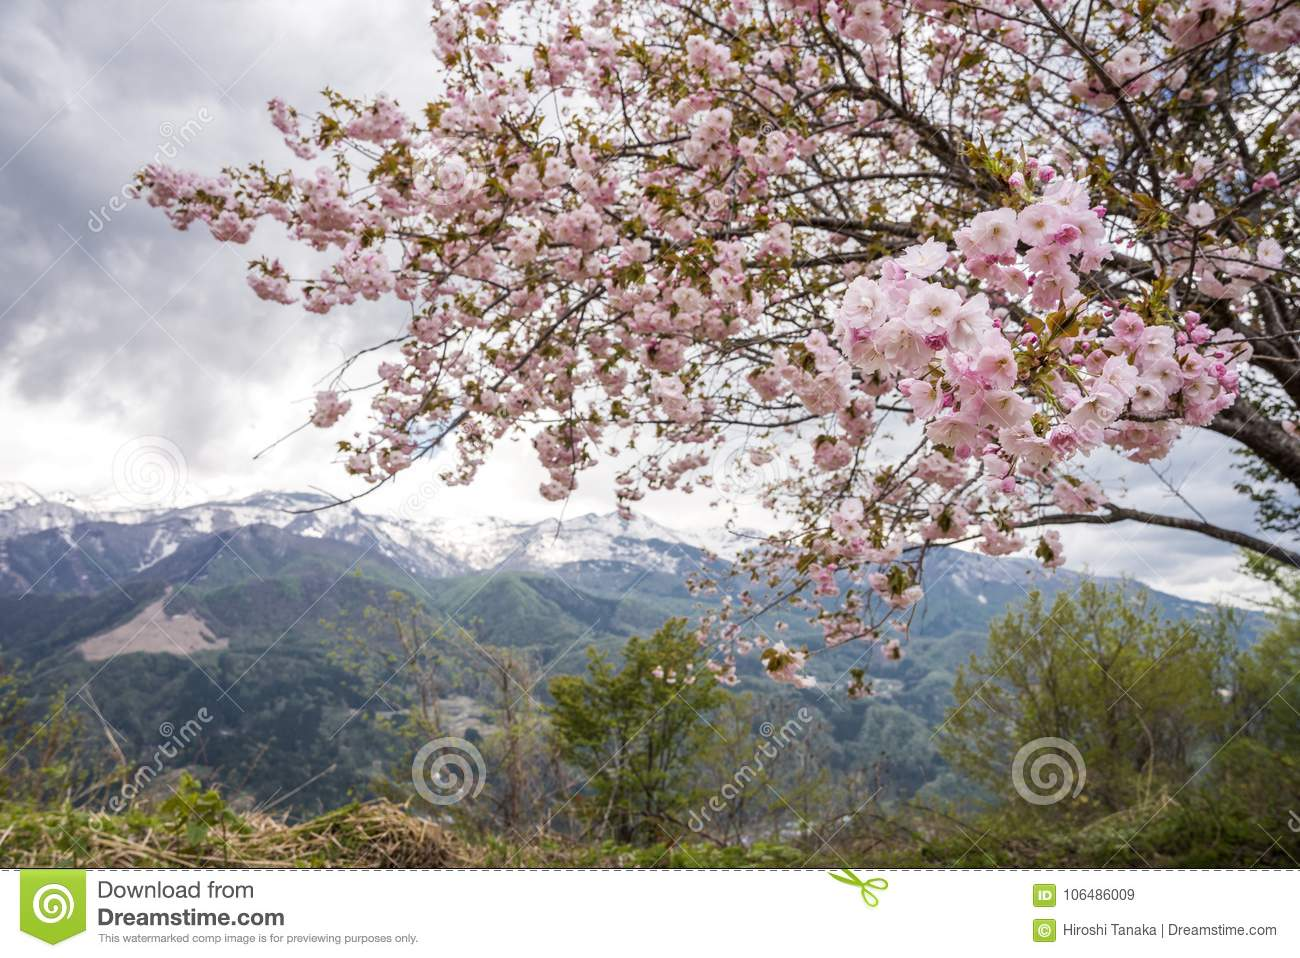 Flowers in front of mountain